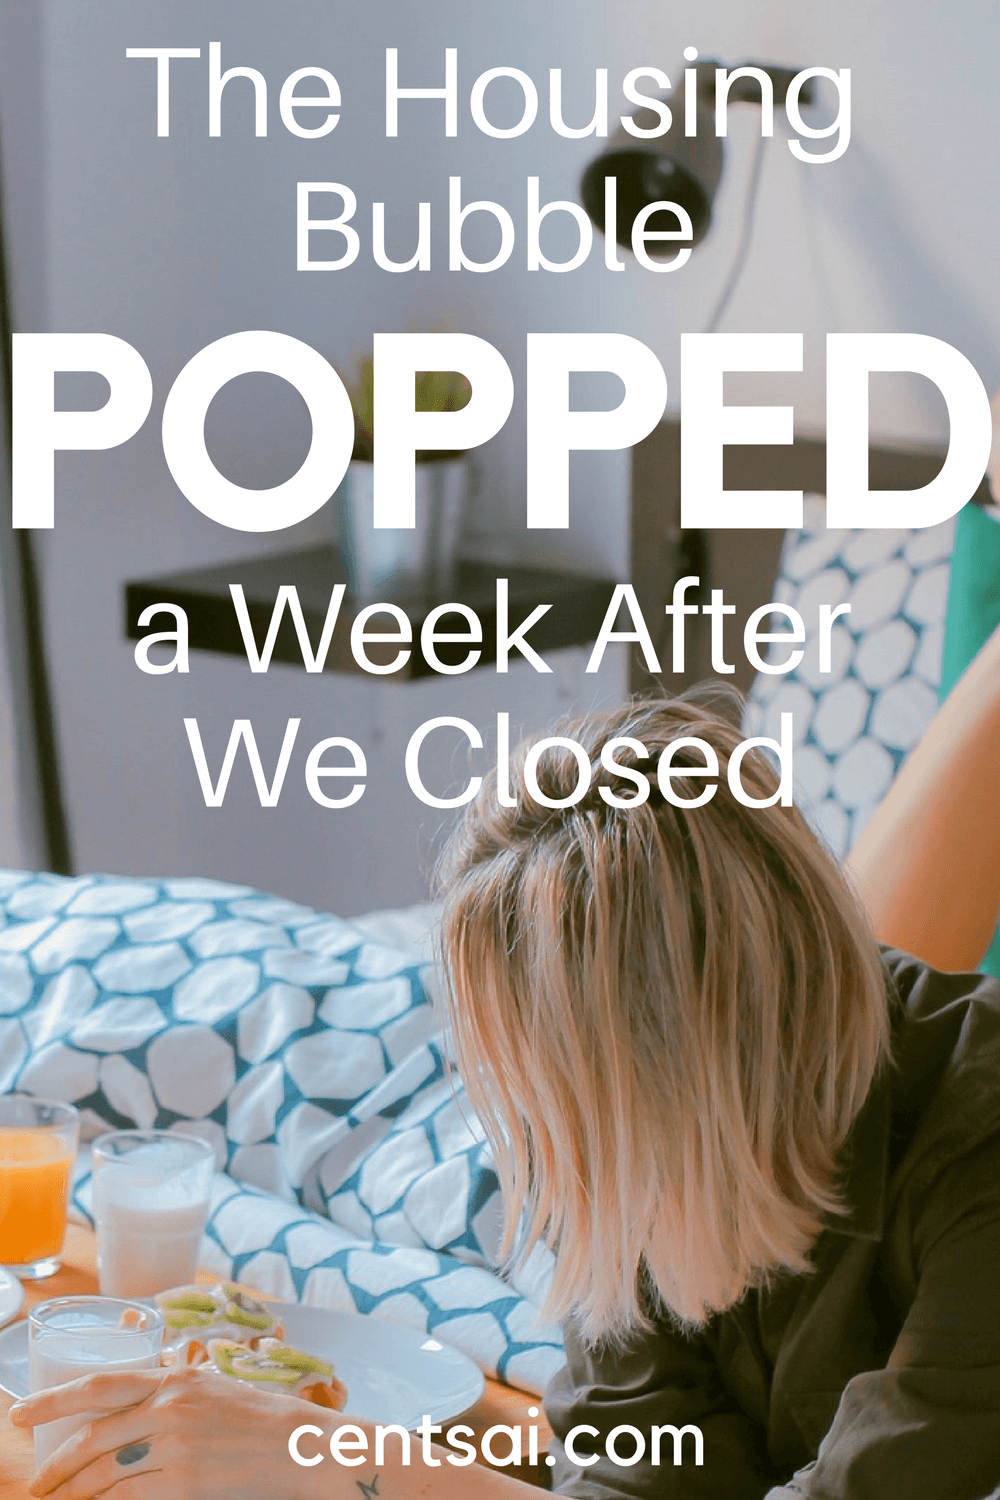 The housing bubble popped on us as soon as we bought our home, but with some renovations and some planning, we actually improved its value.